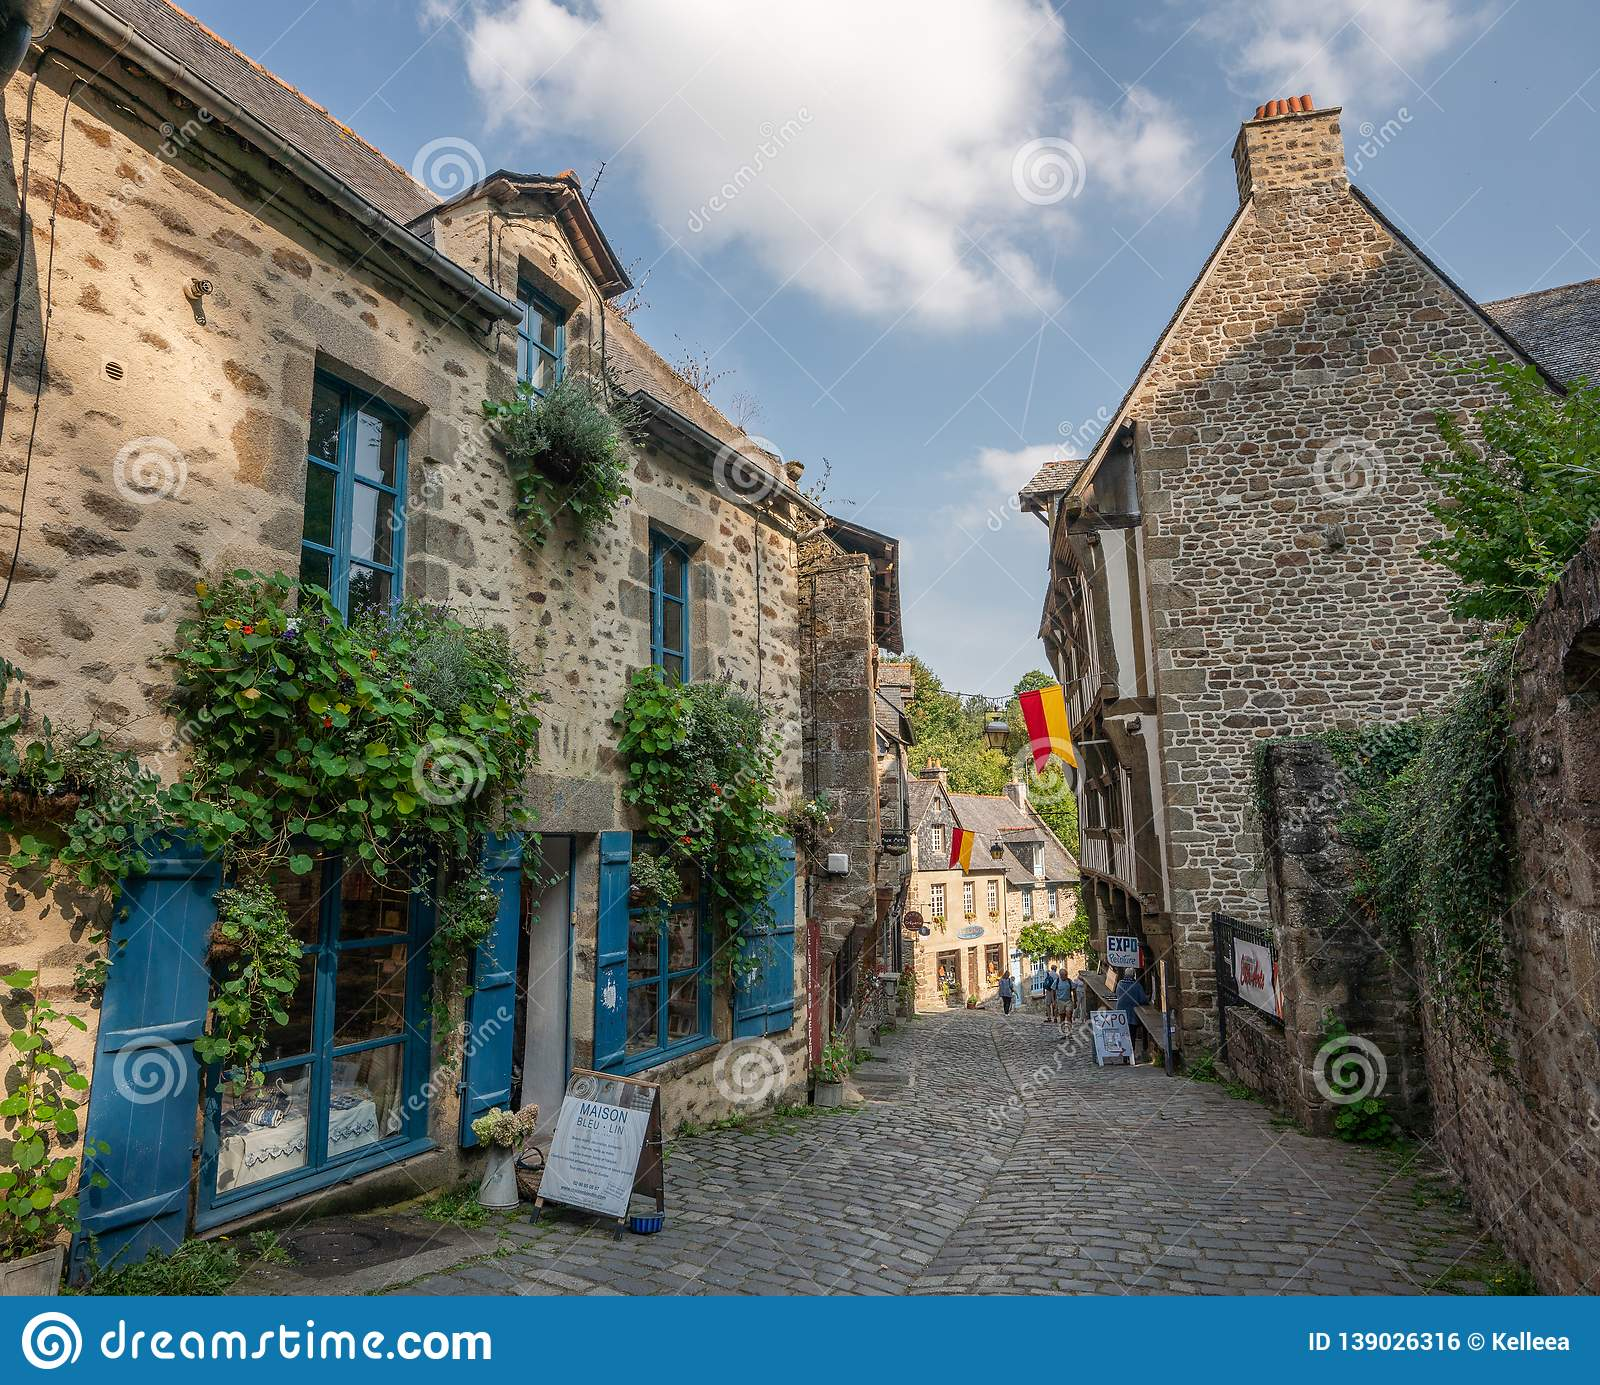 Stone buildings in the old town center of medieval Dinan France.